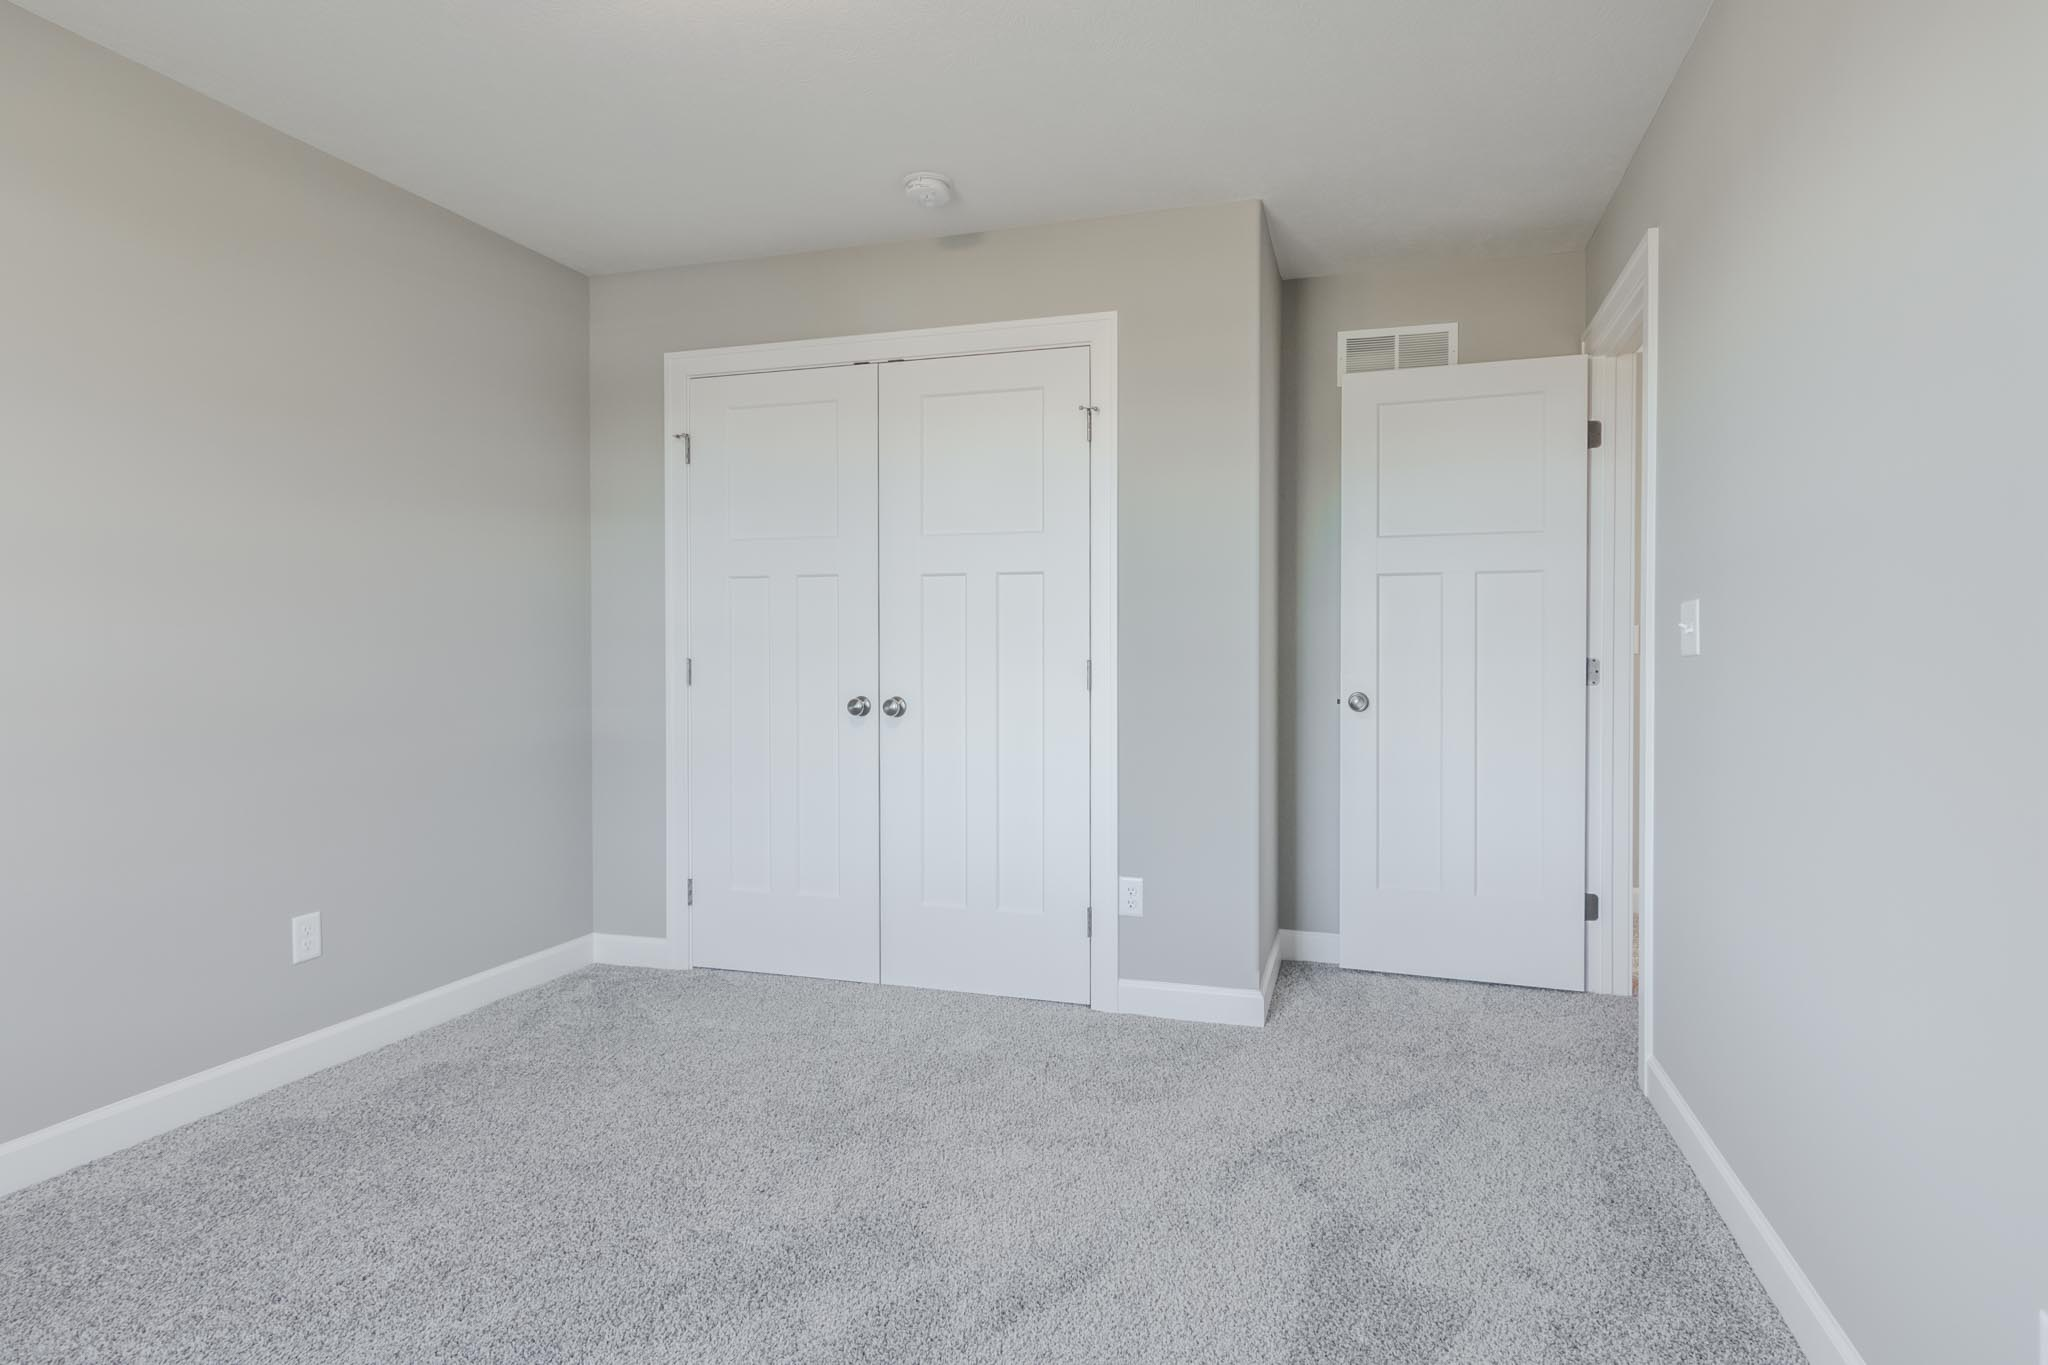 1815 Pfitzer bedroom 4 in Normal IL home for sale